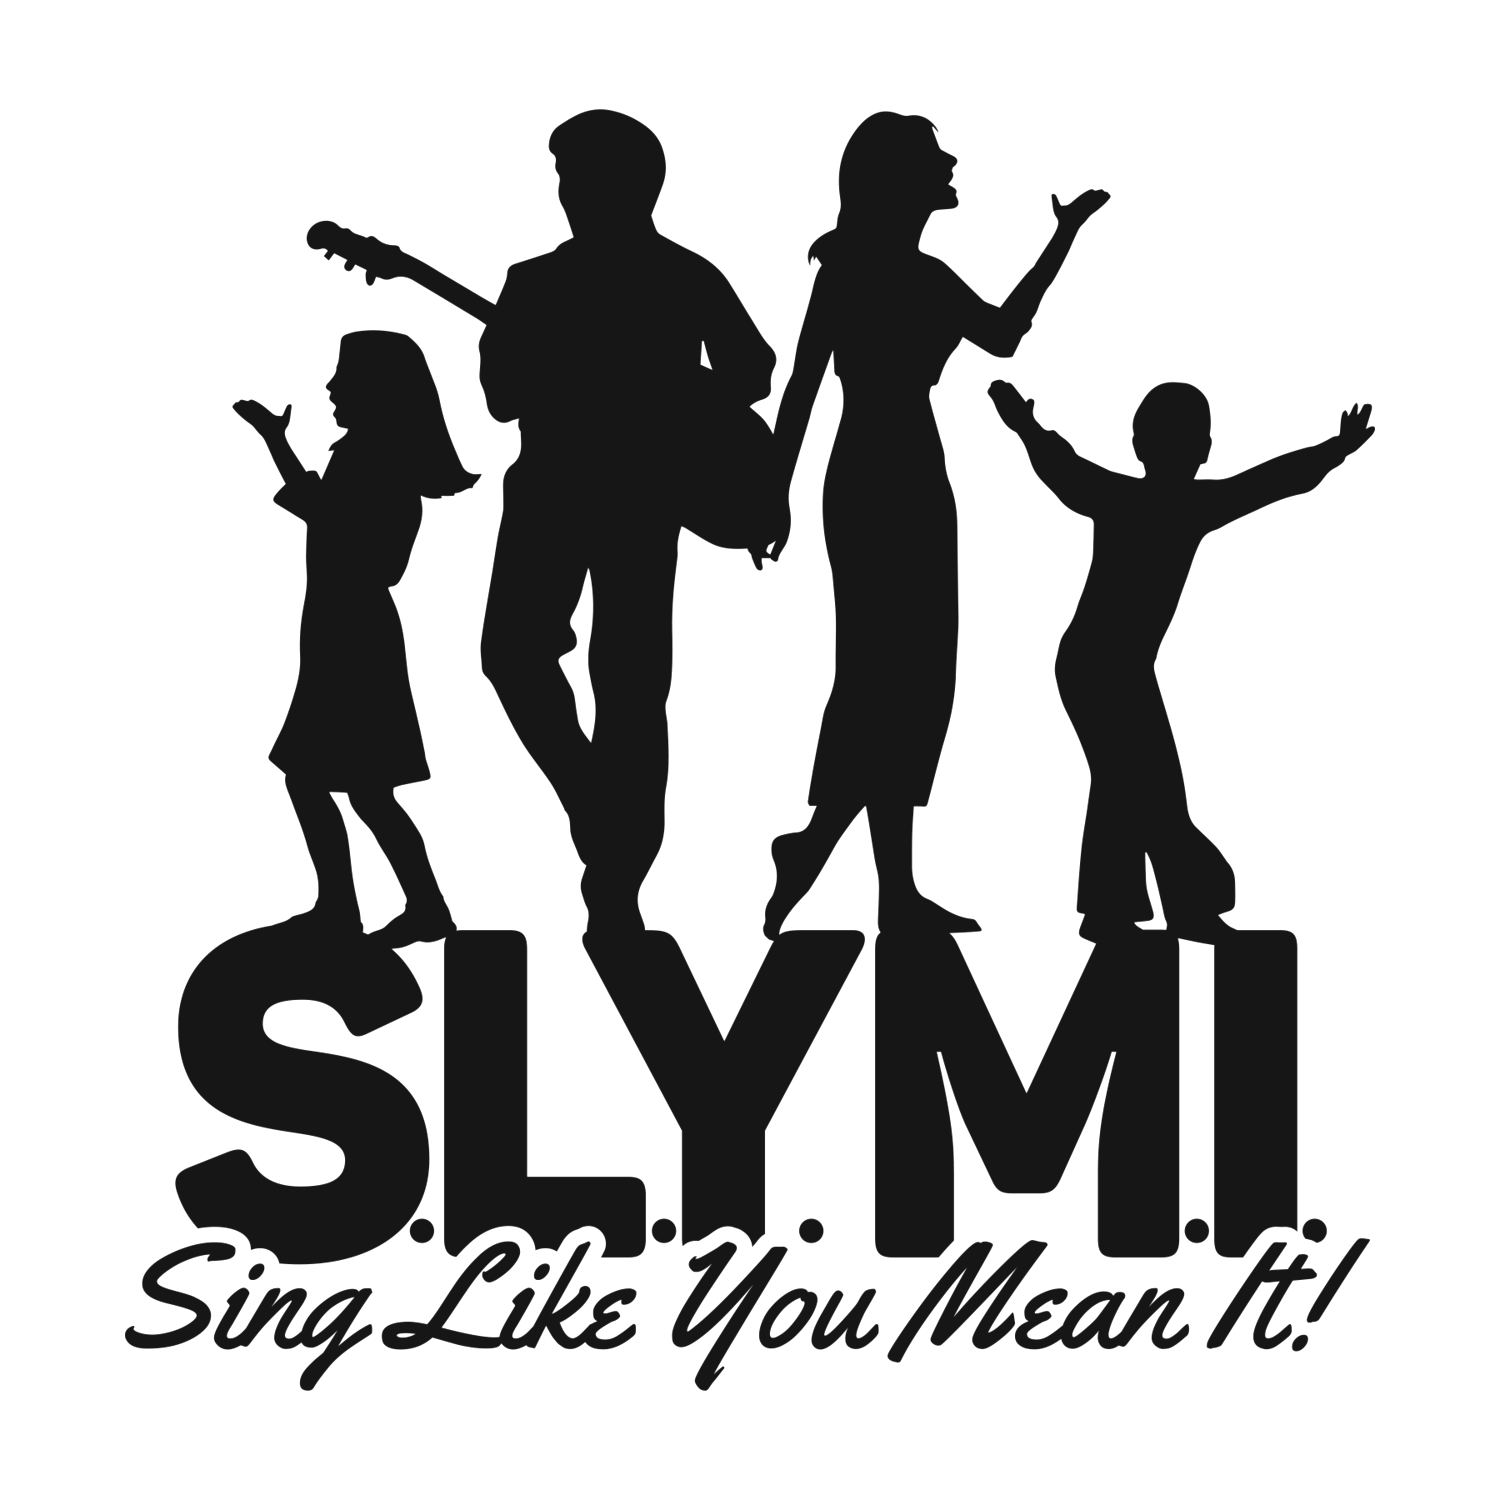 S.L.Y.M.I. (Sing Like You Mean It!)